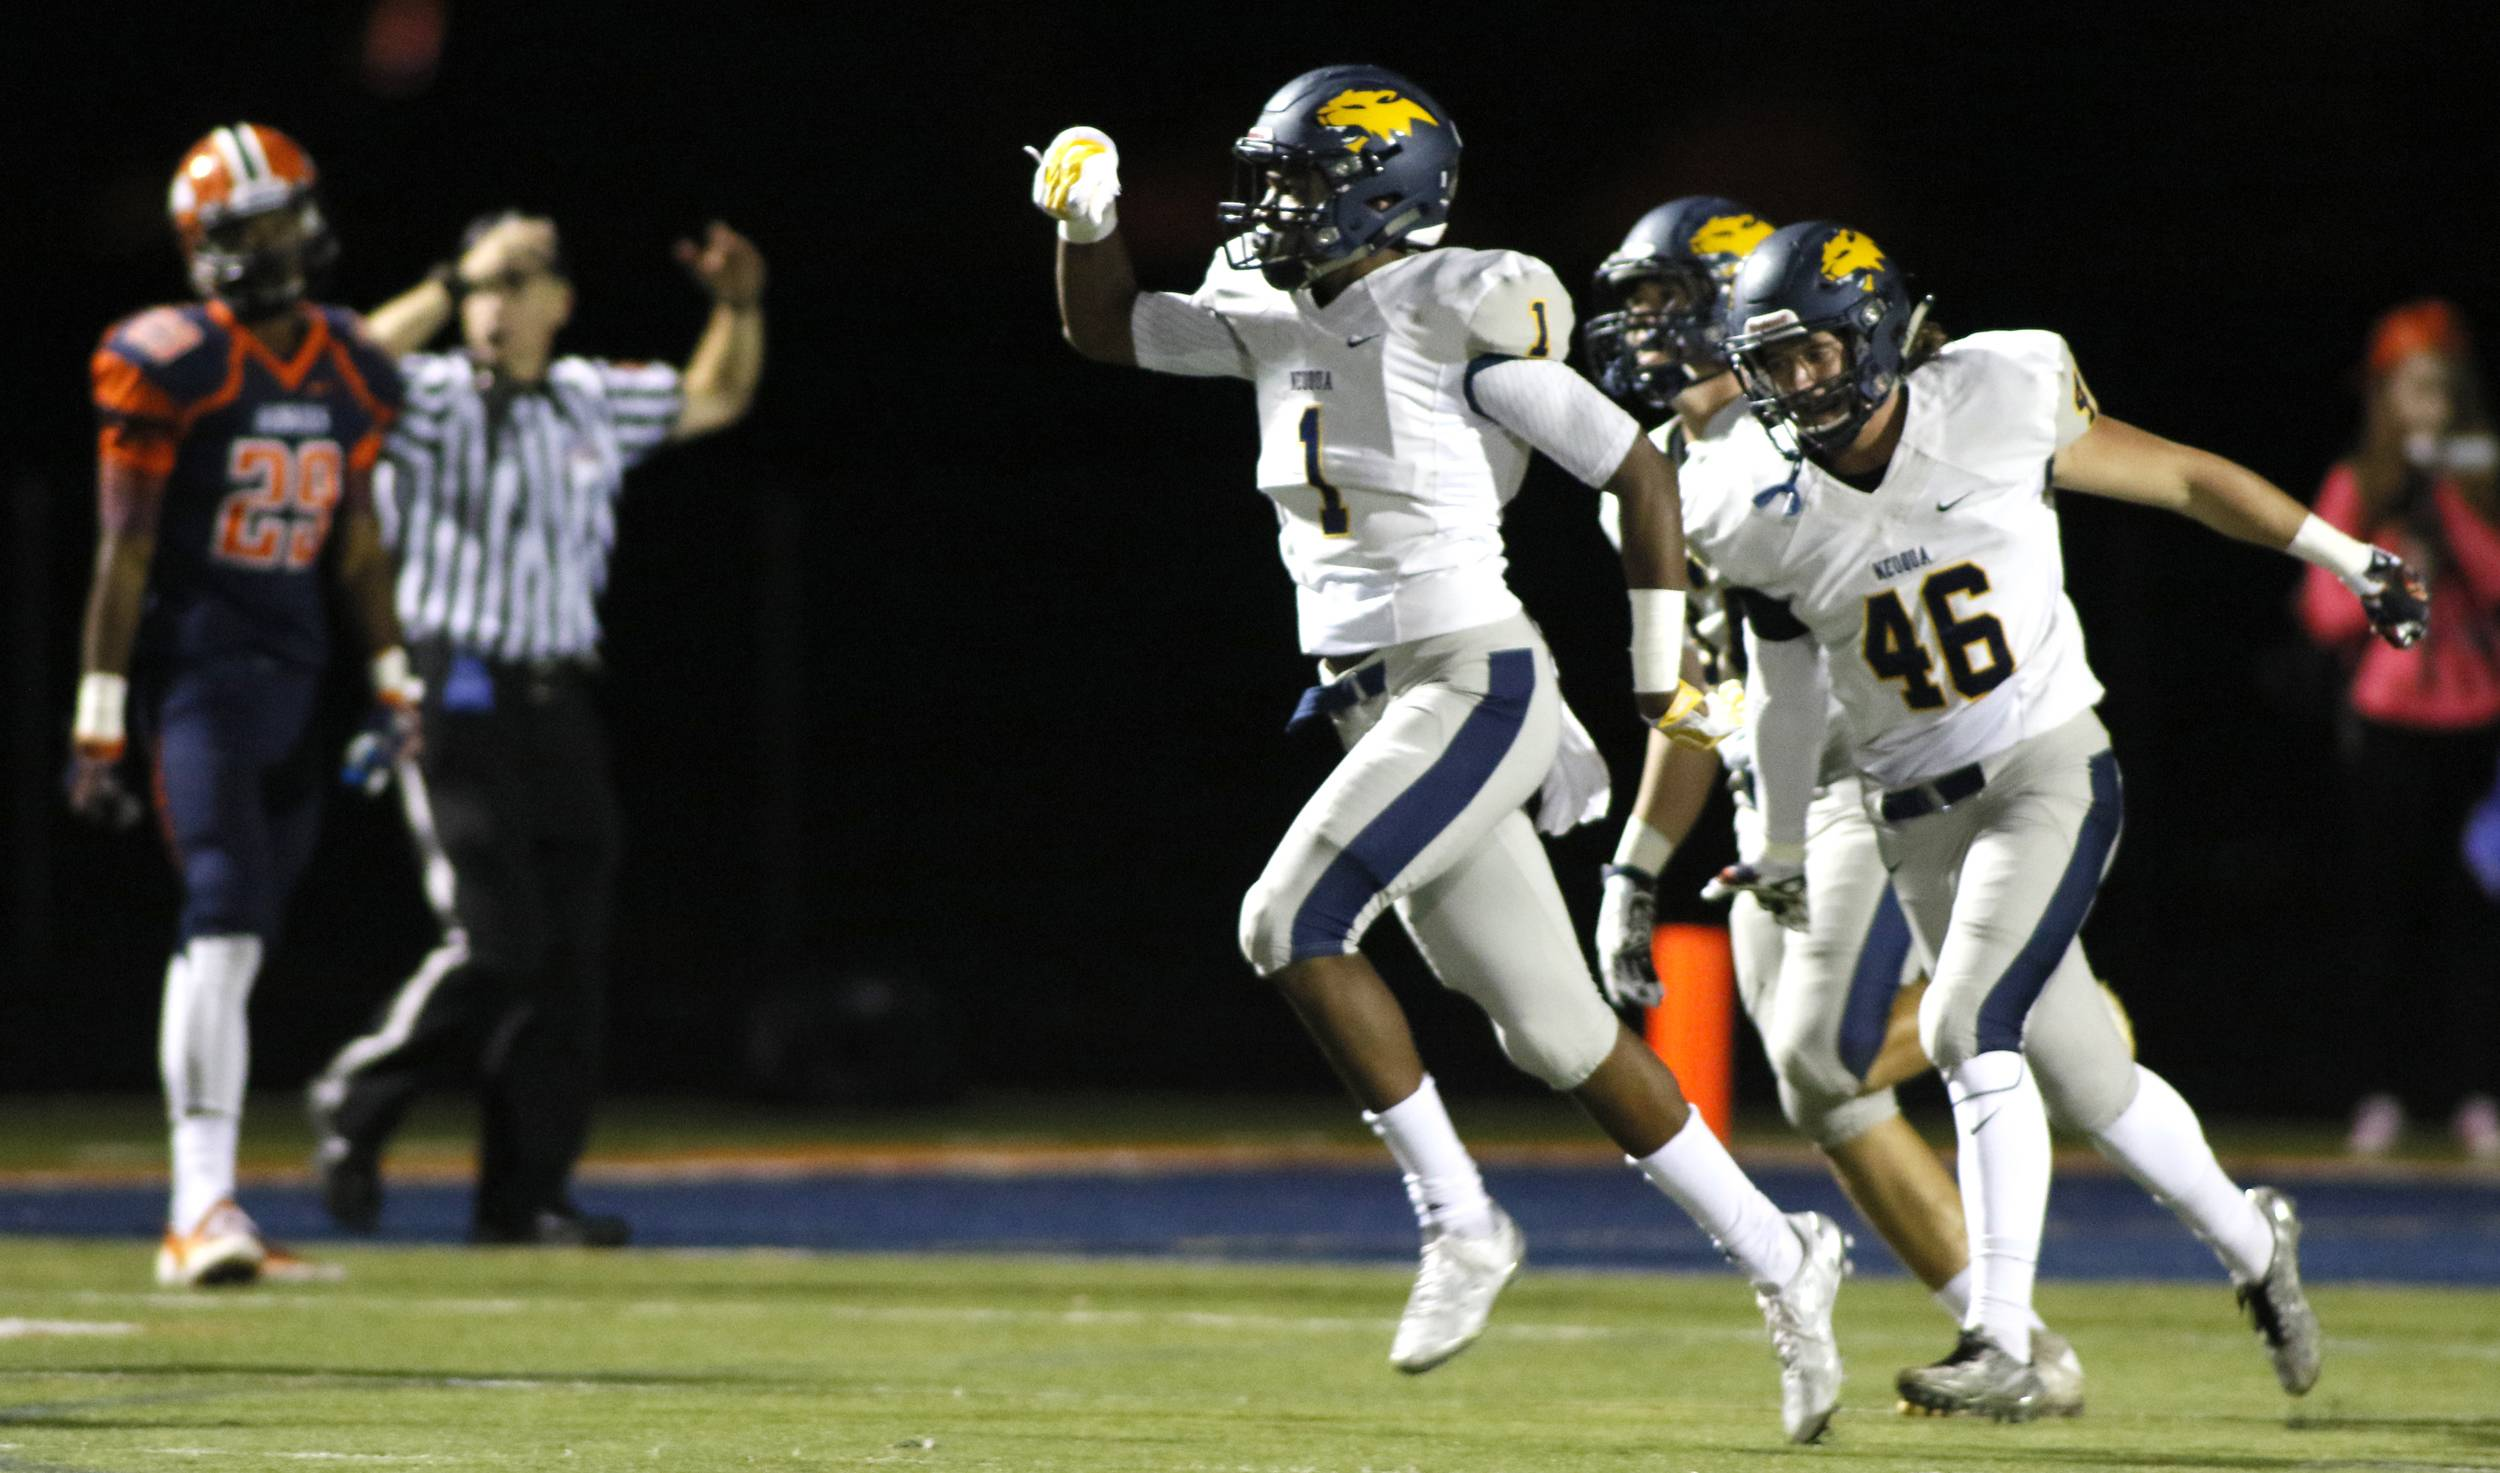 Neuqua Valley's Isaiah Robertson (1) celebrates scoring his first half fumble recovery which he ran back for a touchdown against Naperville North.